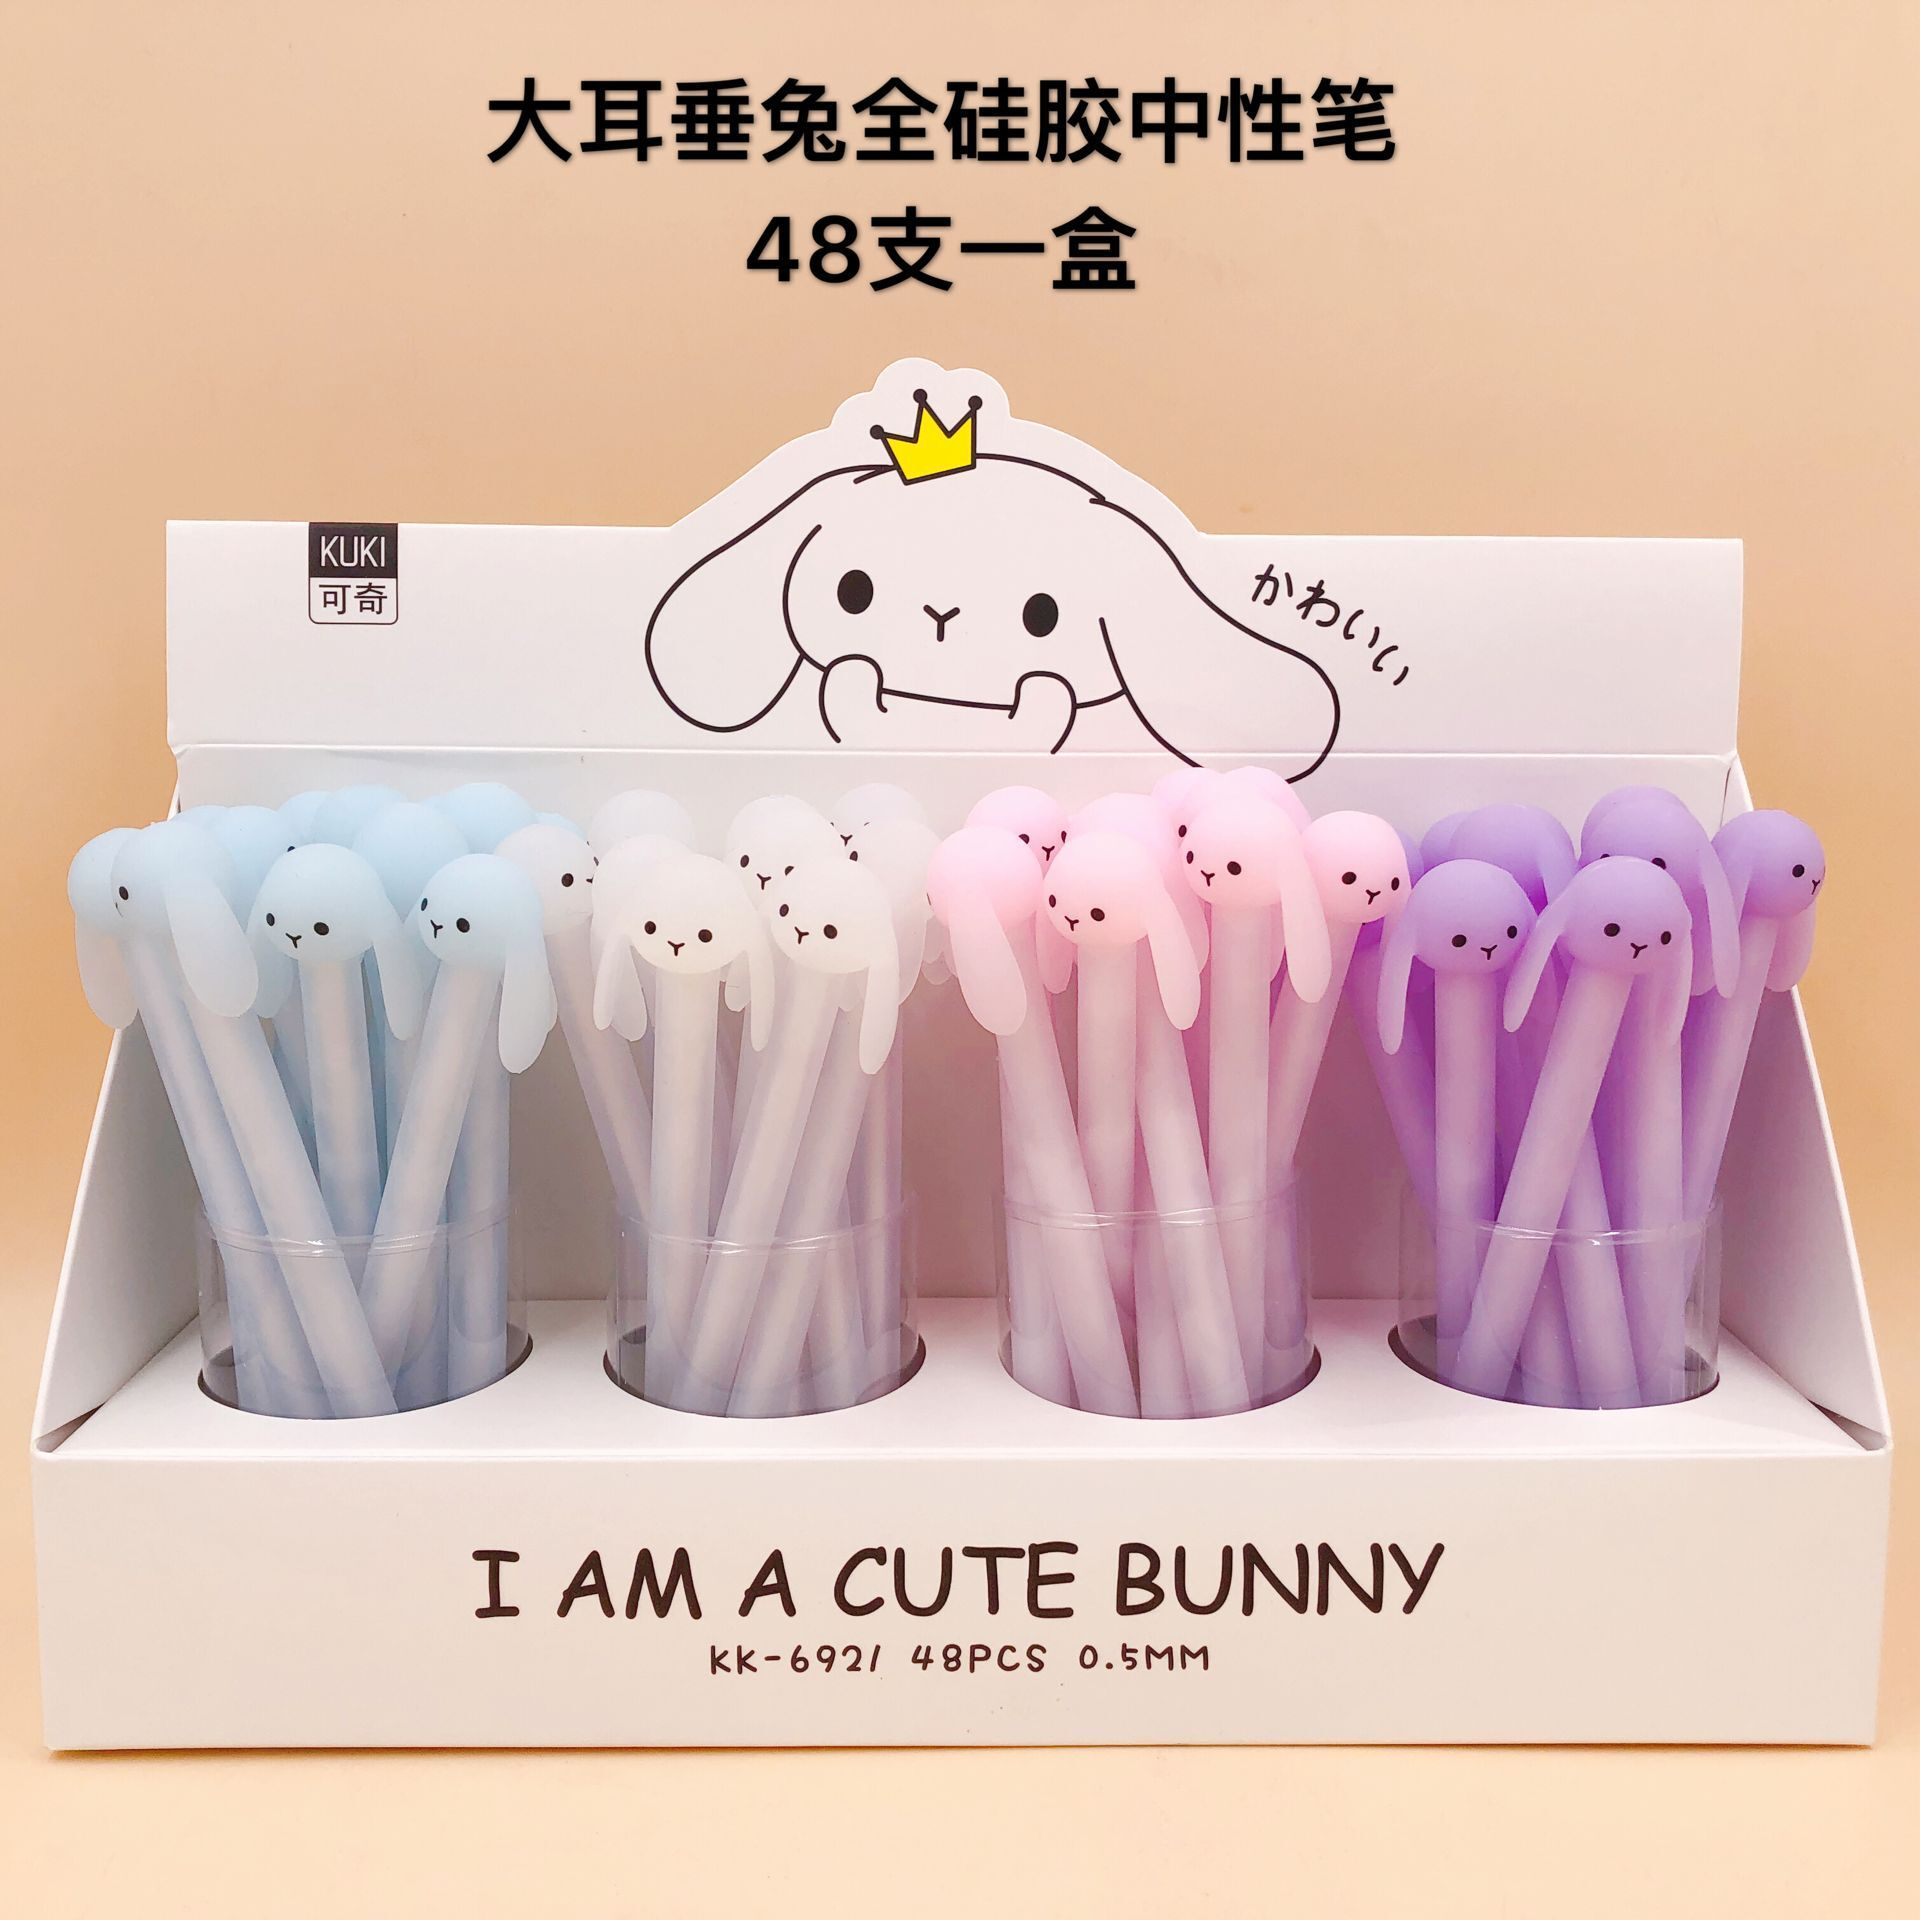 48pcs Creative Stationery Student Pen Cute Rabbit Gel Pen 0 5mm Full Needle Black Ink Pen